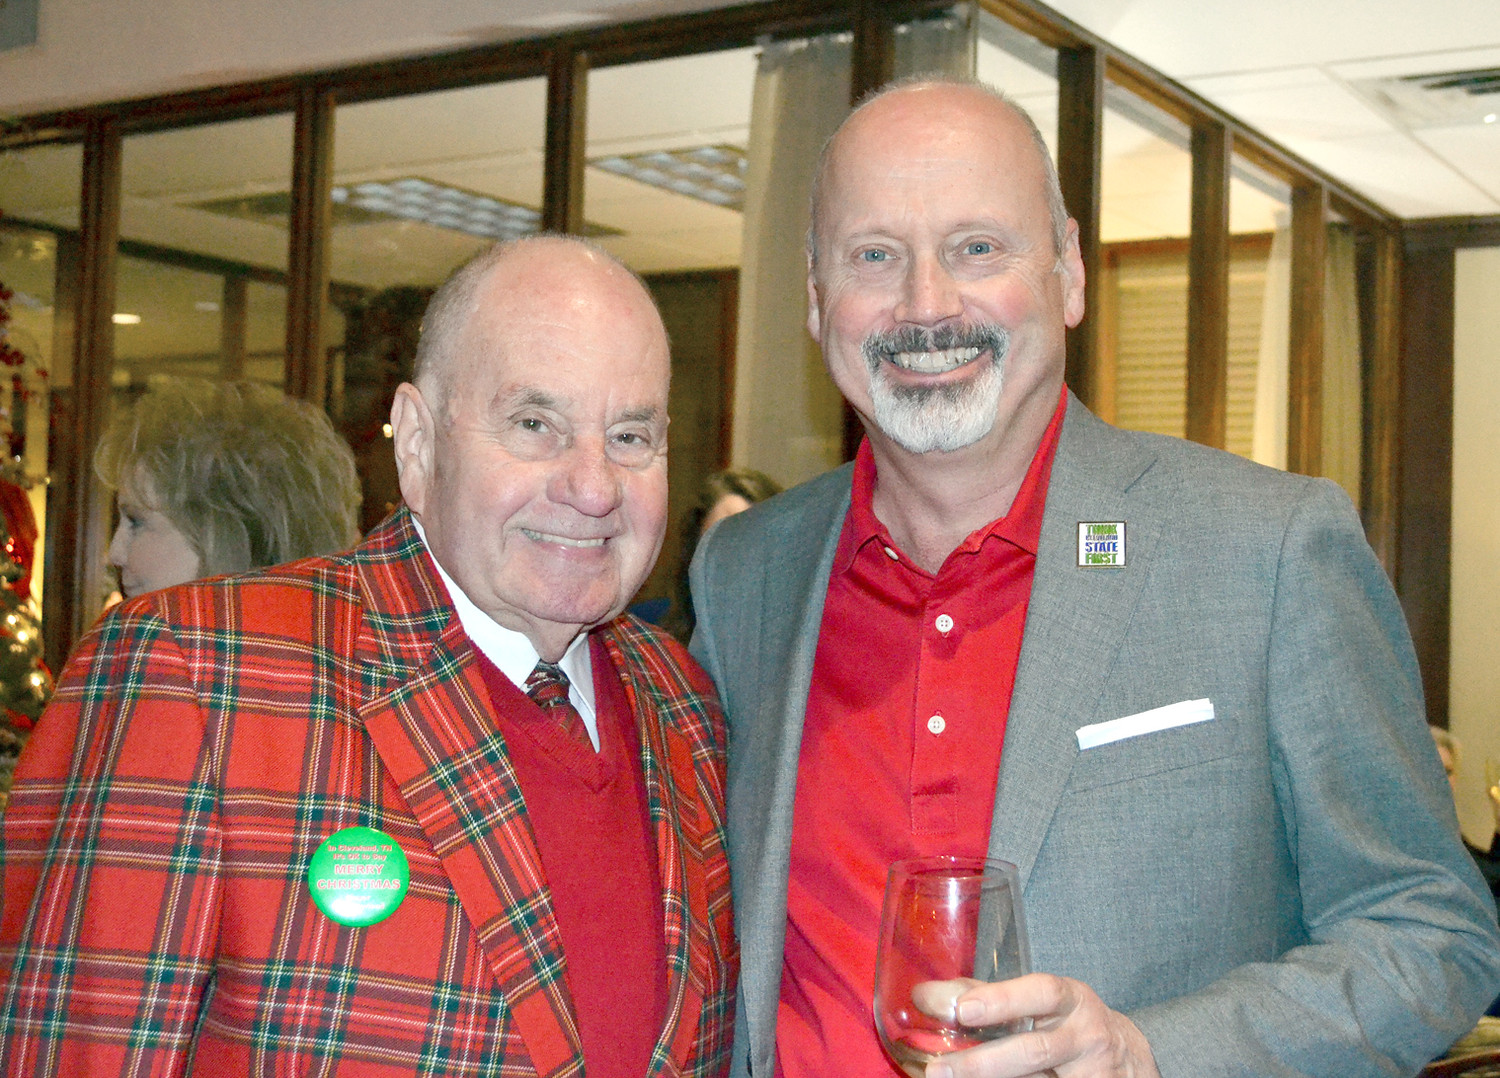 CLEVELAND MAYOR Tom Rowland, left, and Cleveland State Community College President Dr. Bill Seymour take time for a photo at Wednesday night's MainStreet Cleveland Christmas party.